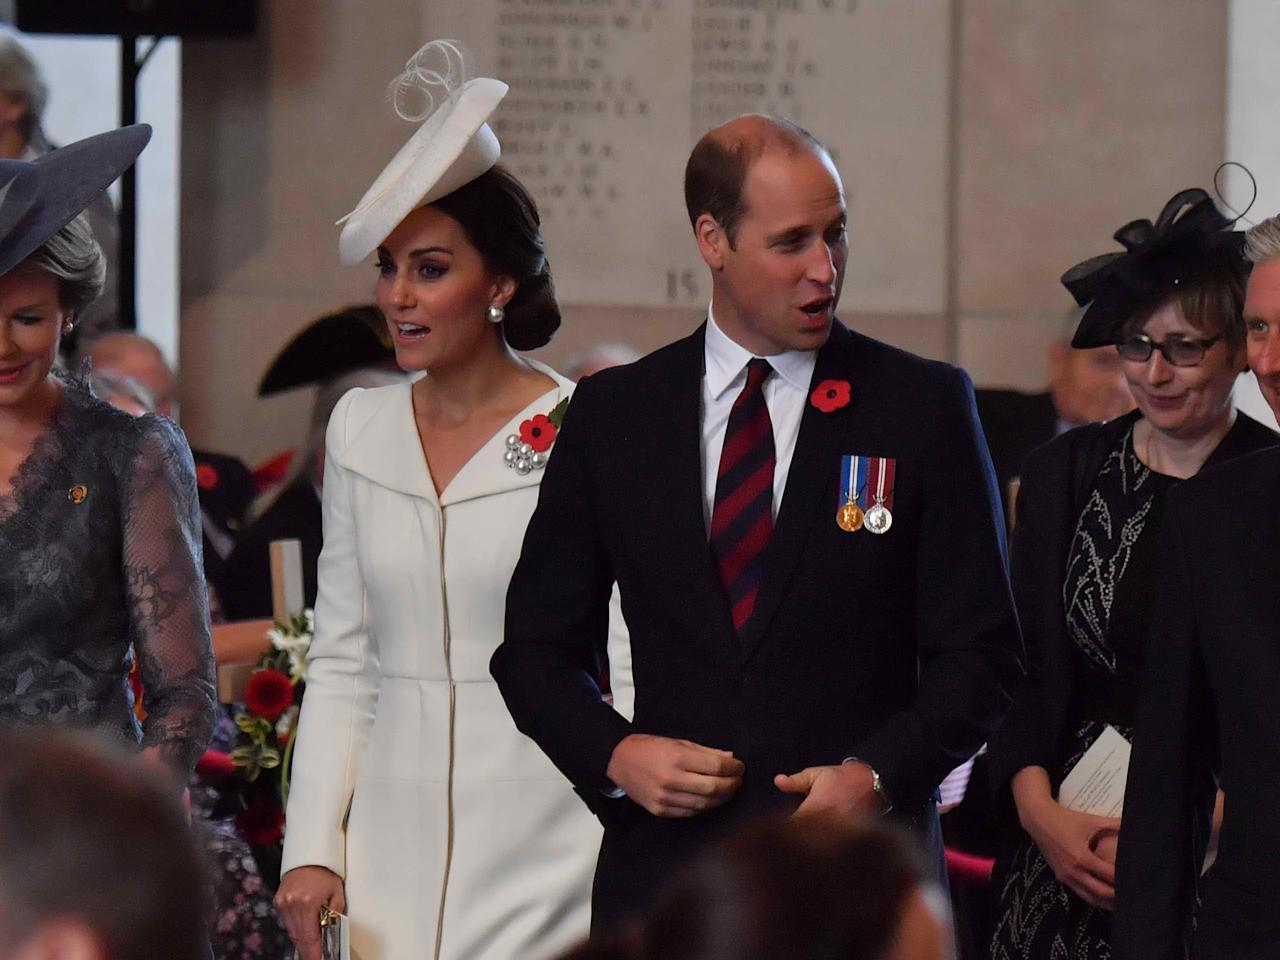 Kate Middleton and Prince William avoid particular food during royal tours. Pictured: Couple attends the Last Post ceremony at the Commonwealth War Graves Commission Ypres (Menin Gate) Memorial on July 30, 2017.